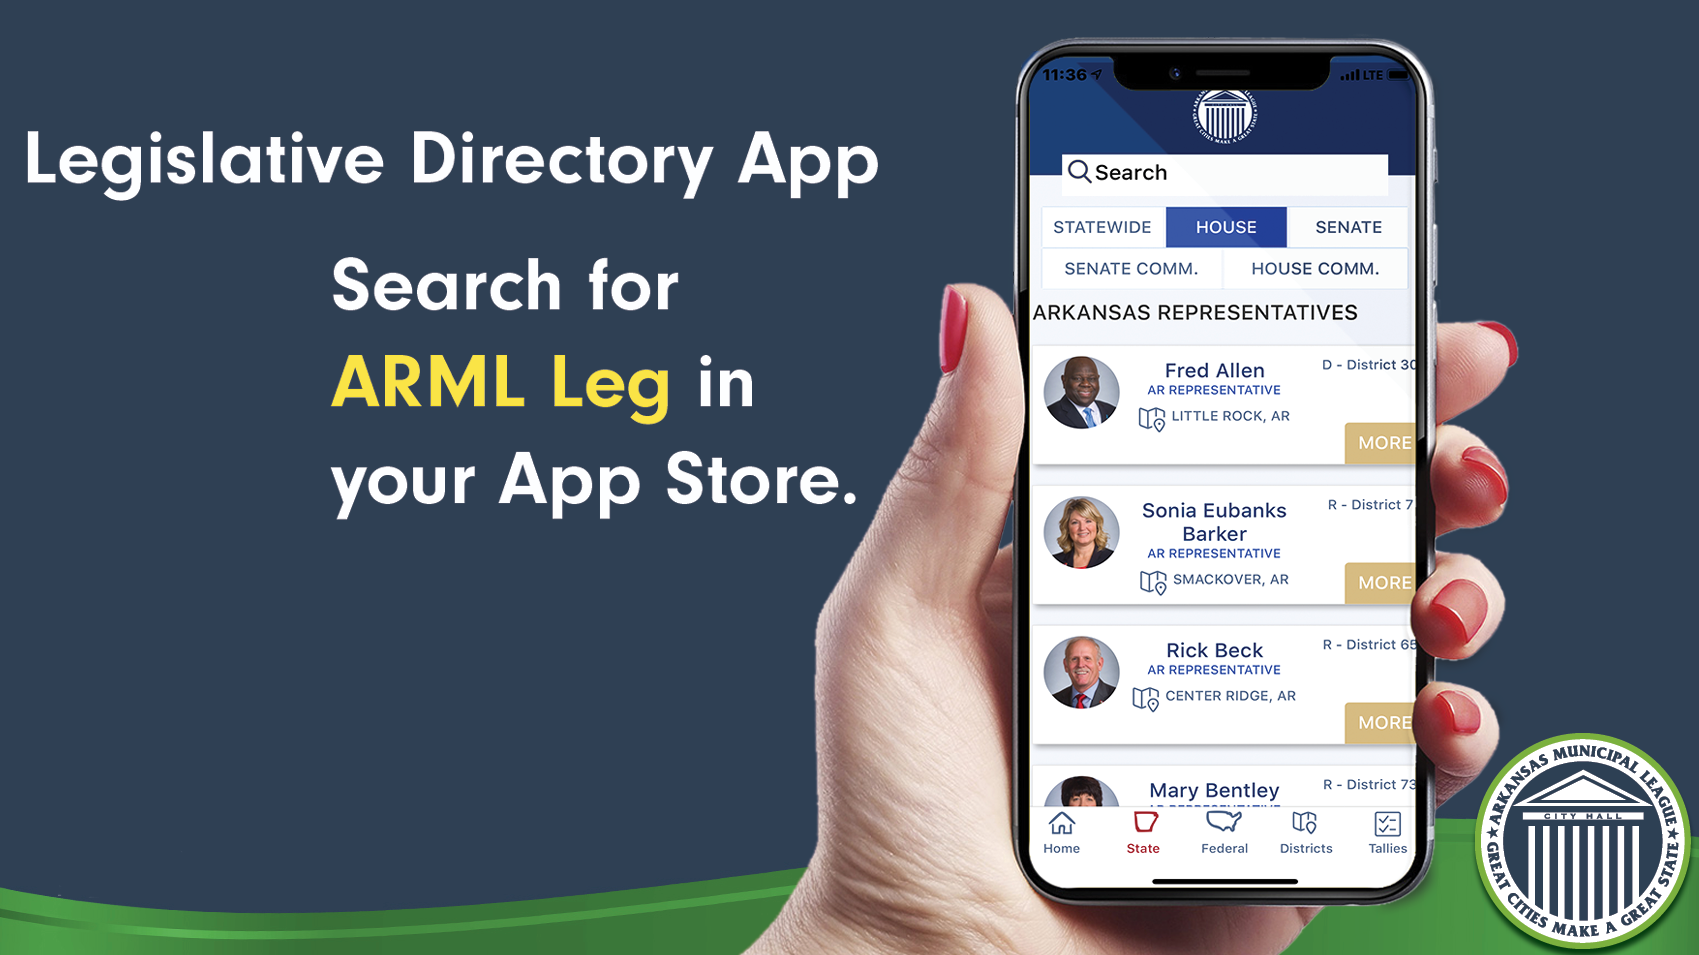 Legislative Directory App - Search for ARML Leg in your App Store